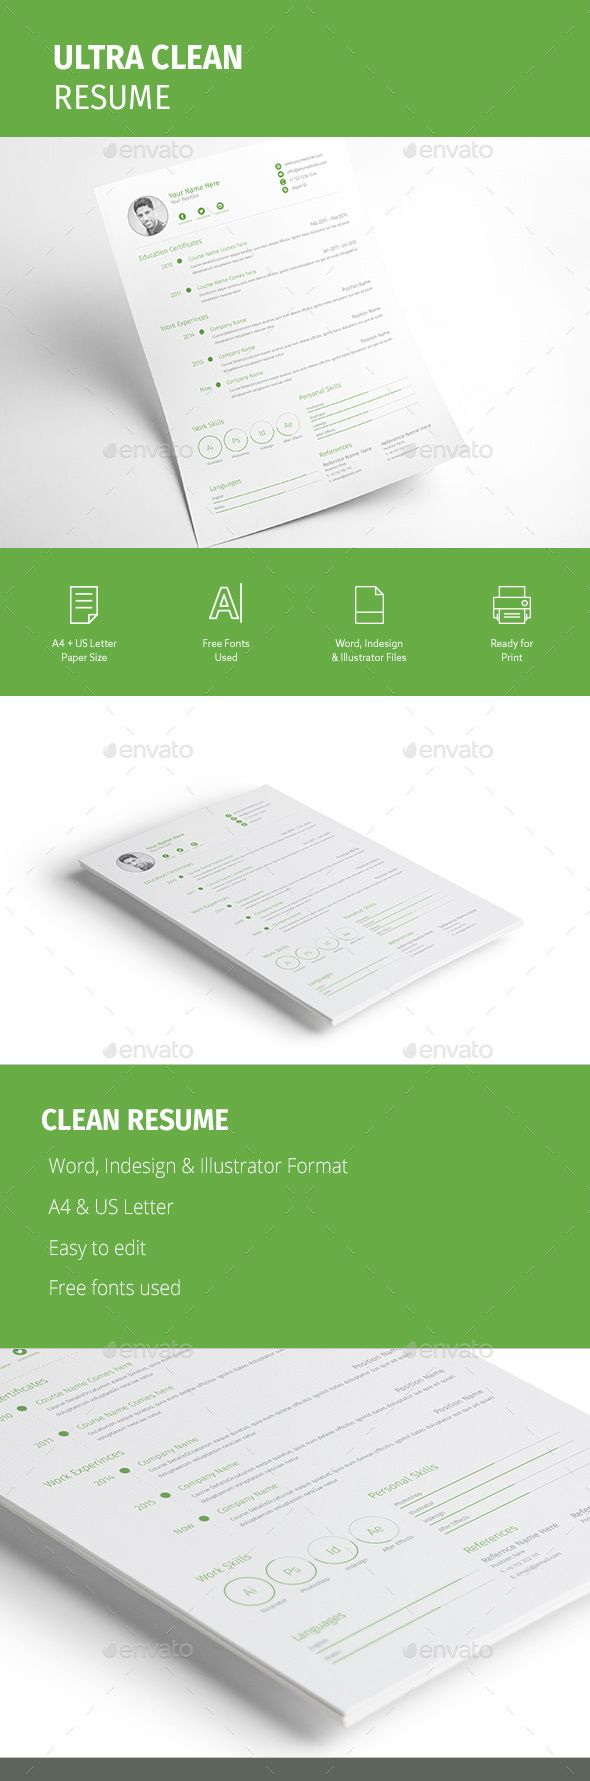 Best Best Resume Templates Microsoft Word Images On